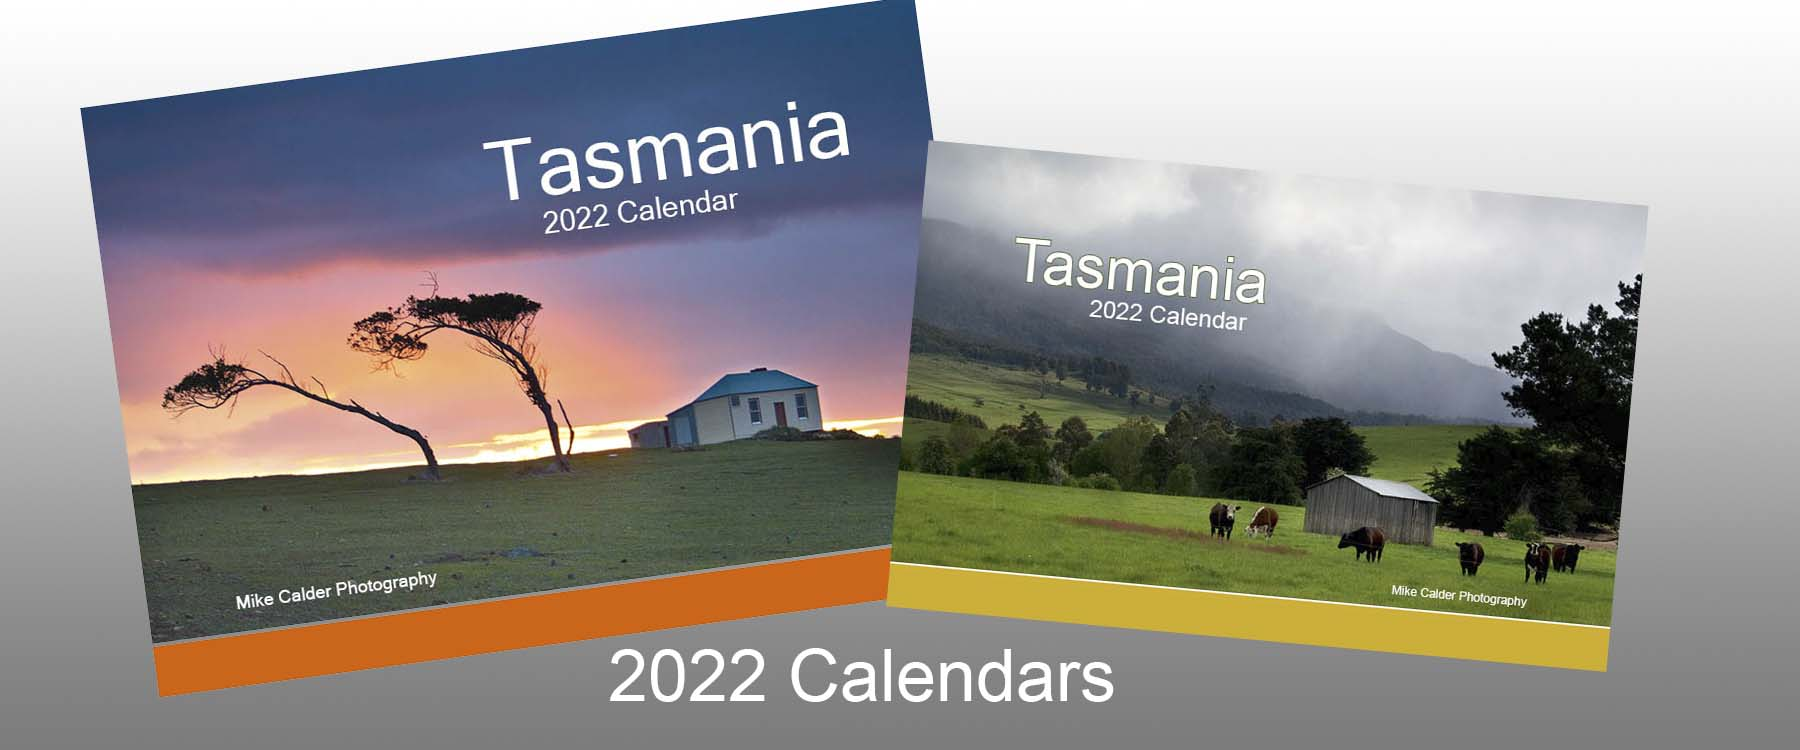 2022 calendars with background